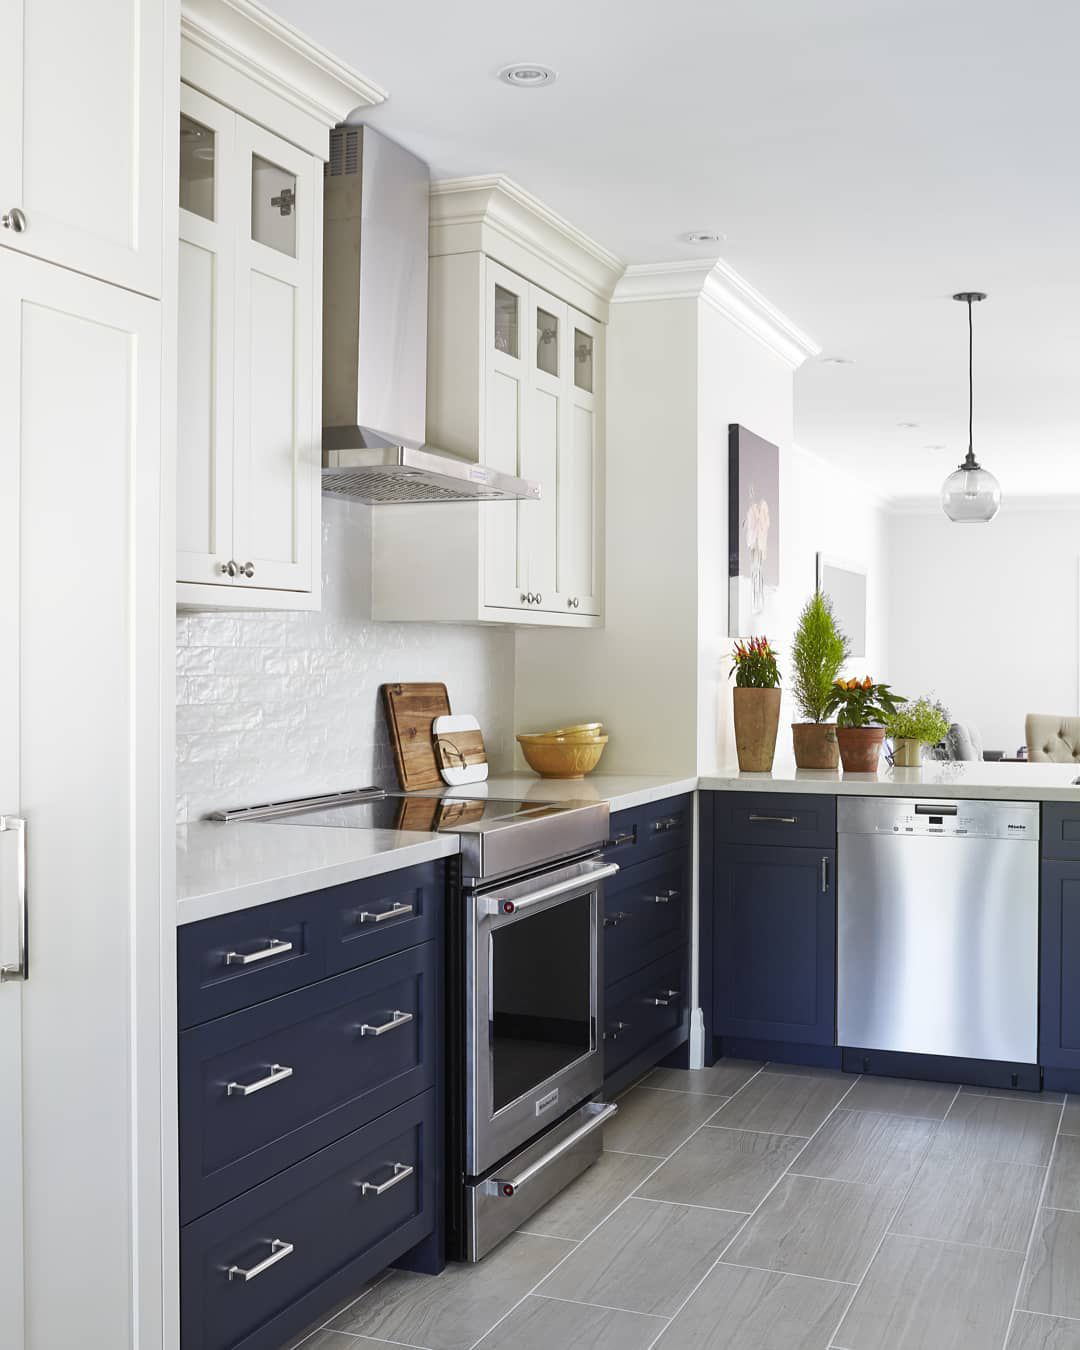 9 Blue Kitchen Cabinet Ideas That Will Inspire Your Kitchen Remodel